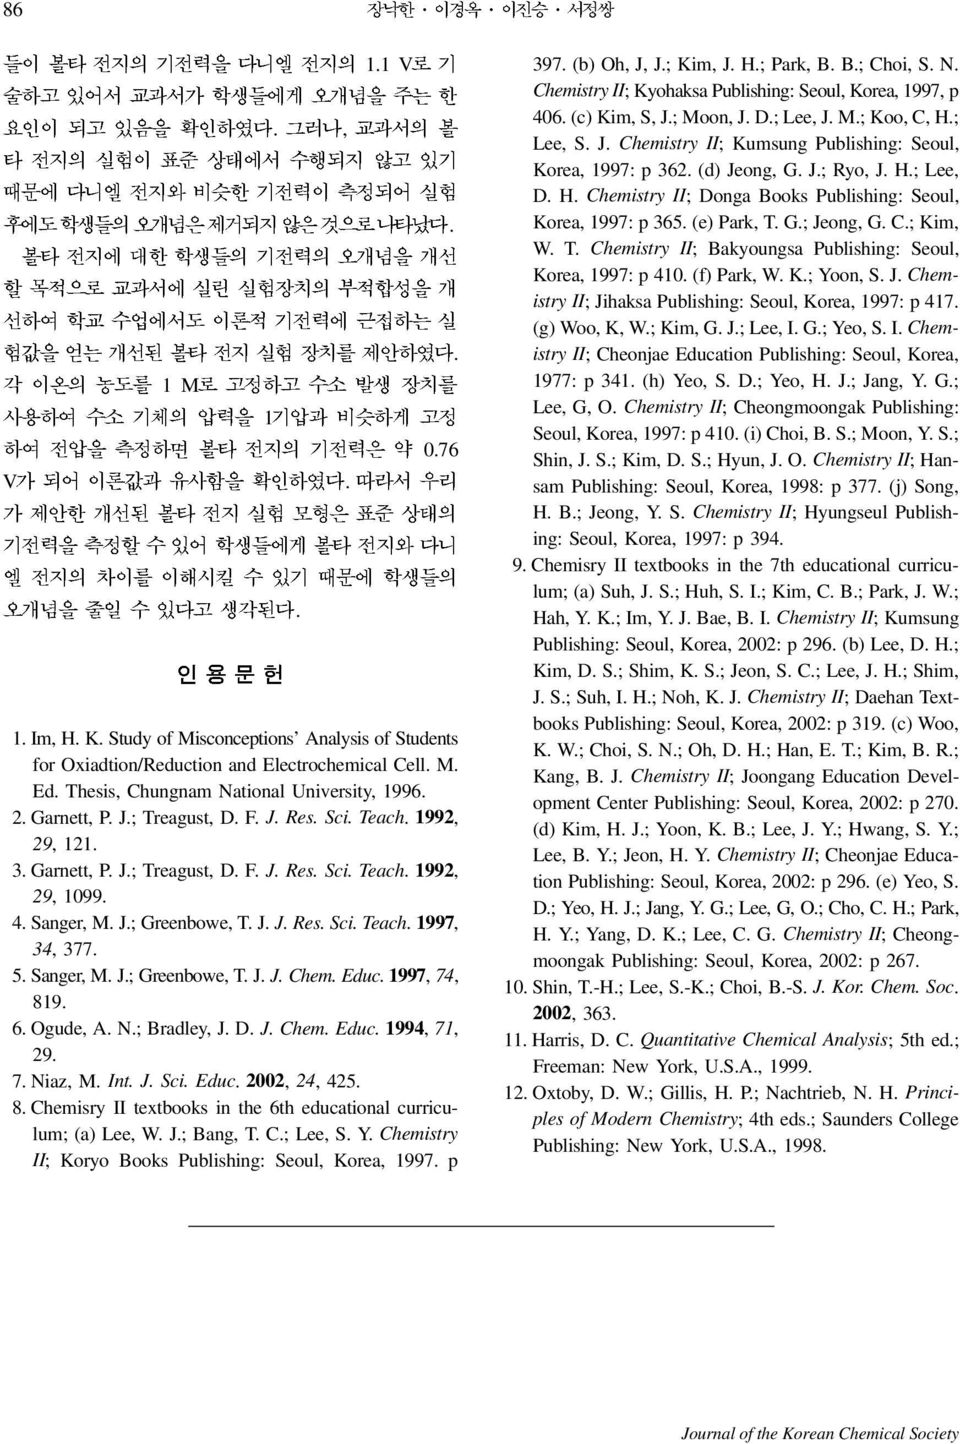 Study of Misconceptions Analysis of Students for Oxiadtion/Reduction and Electrochemical Cell. M. Ed. Thesis, Chungnam National University, 1996. 2. Garnett, P. J.; Treagust, D. F. J. Res. Sci. Teach.